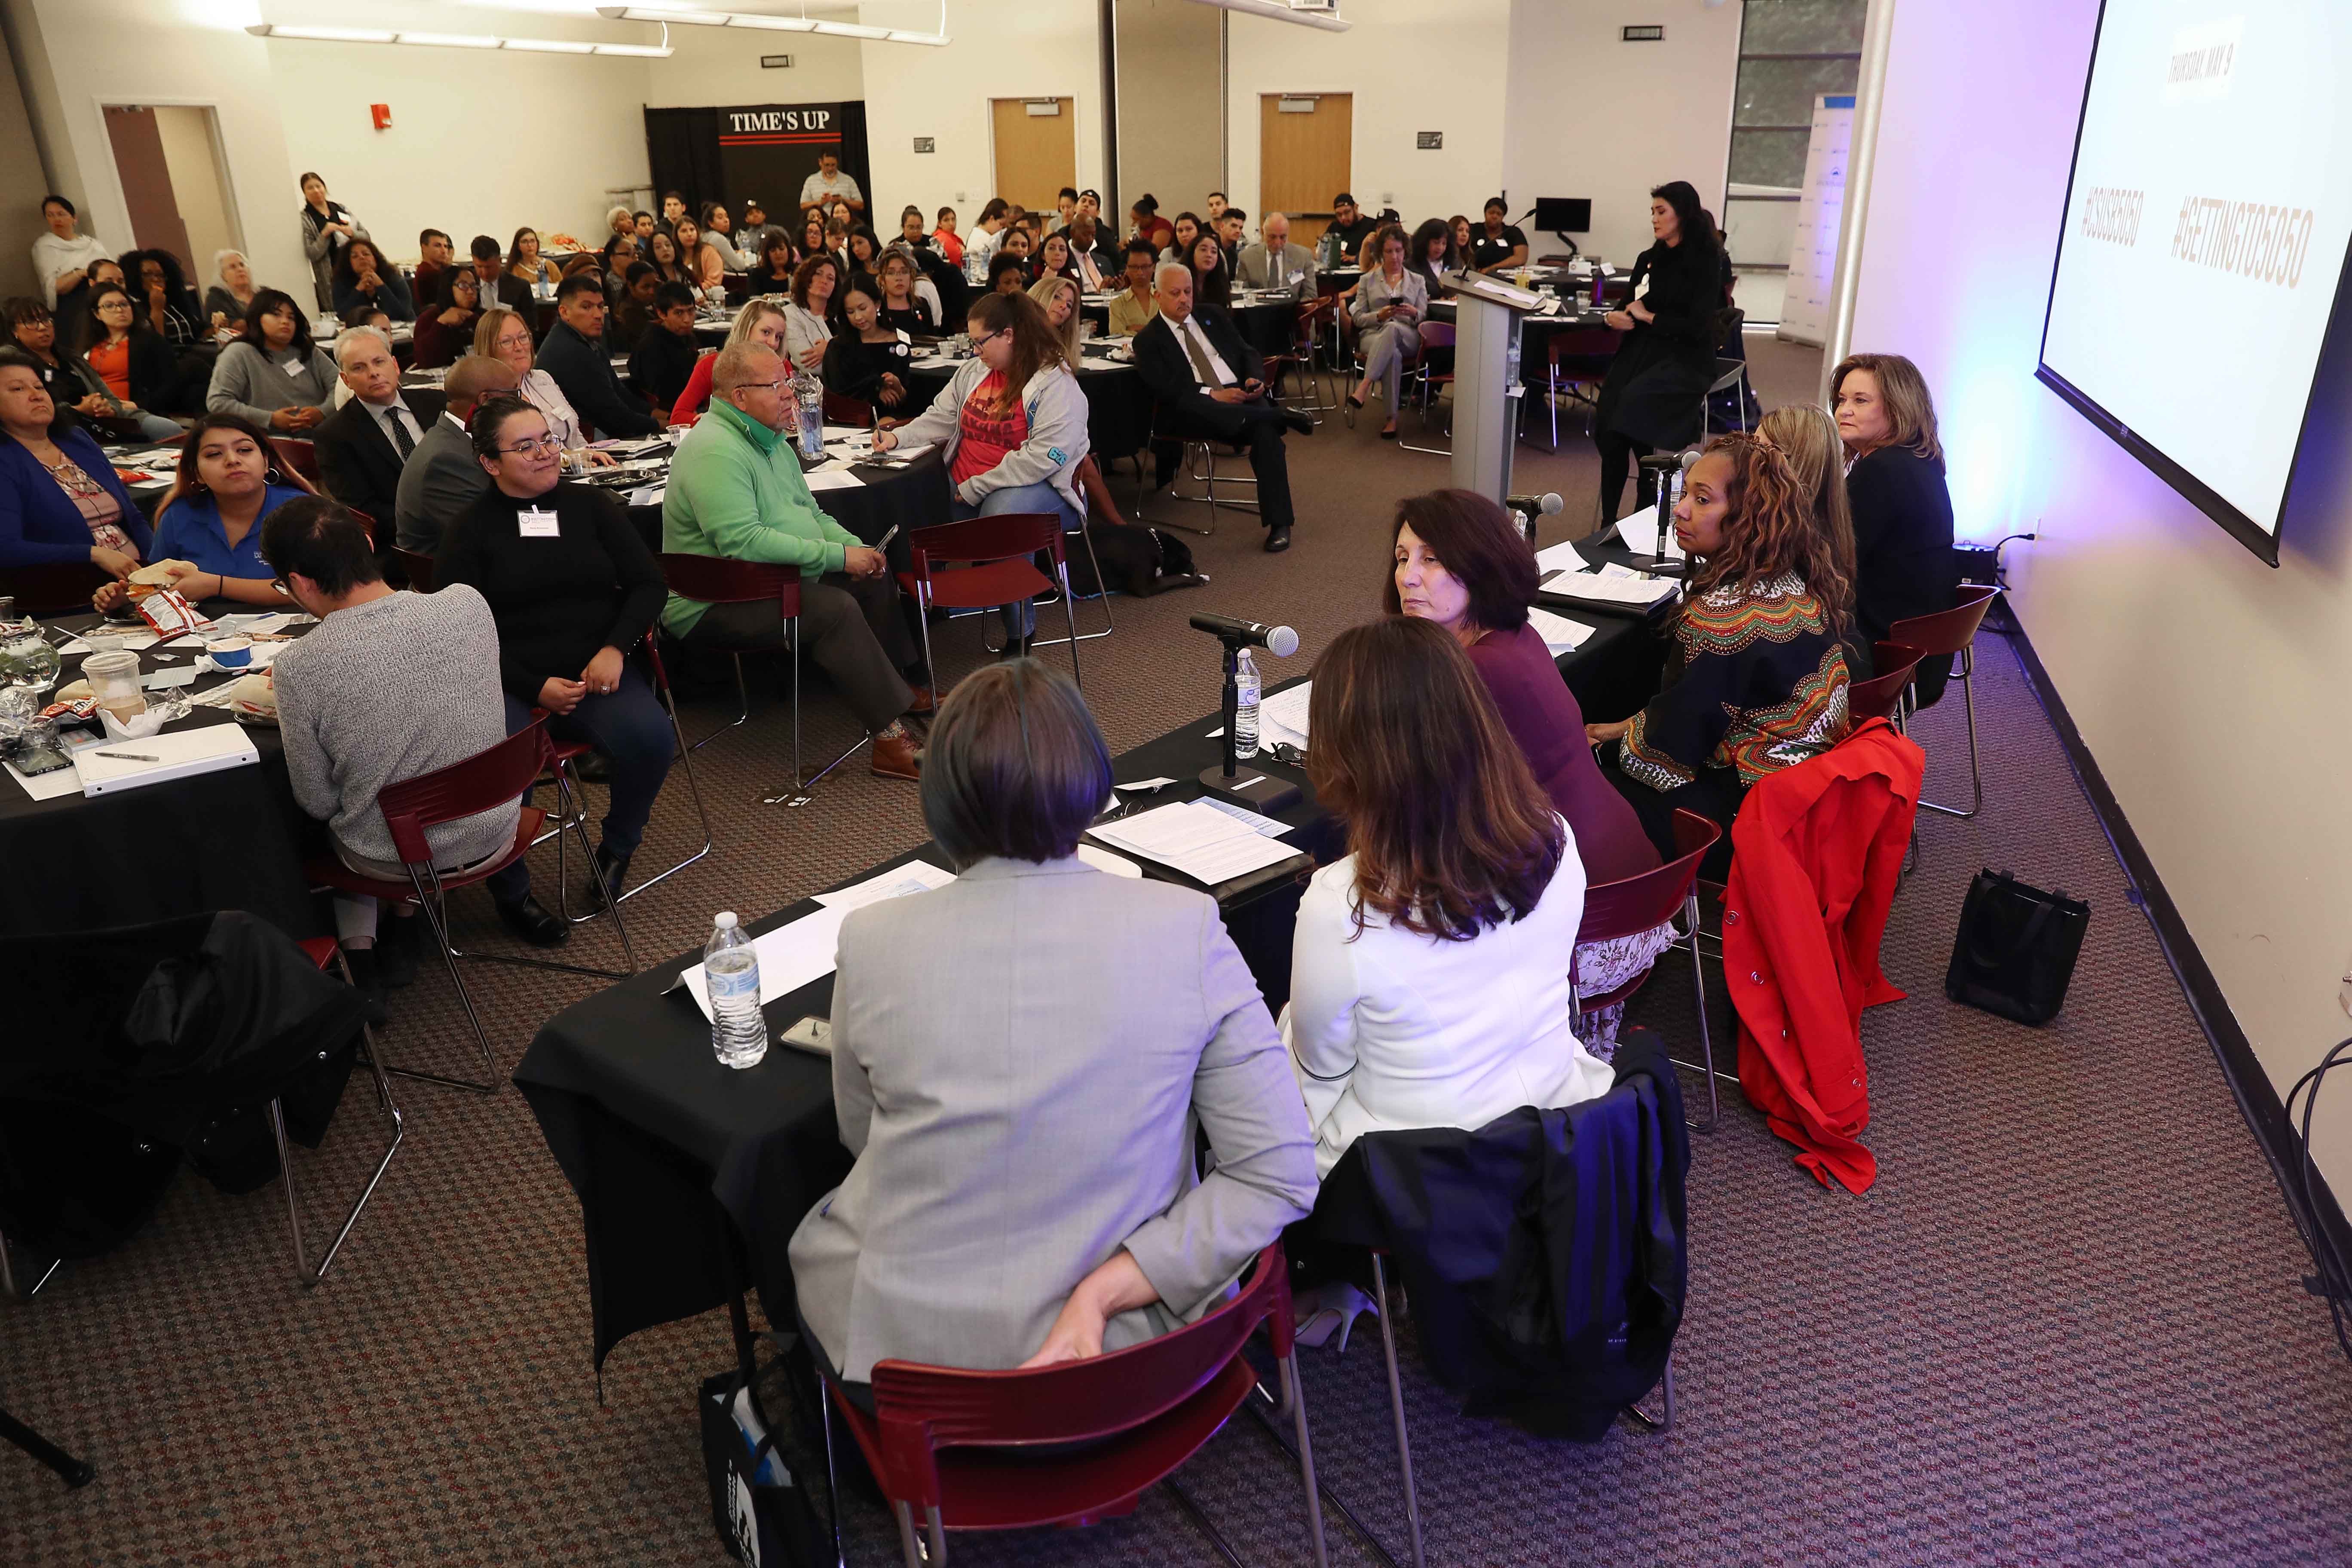 The event also featured a women's leadership panel,